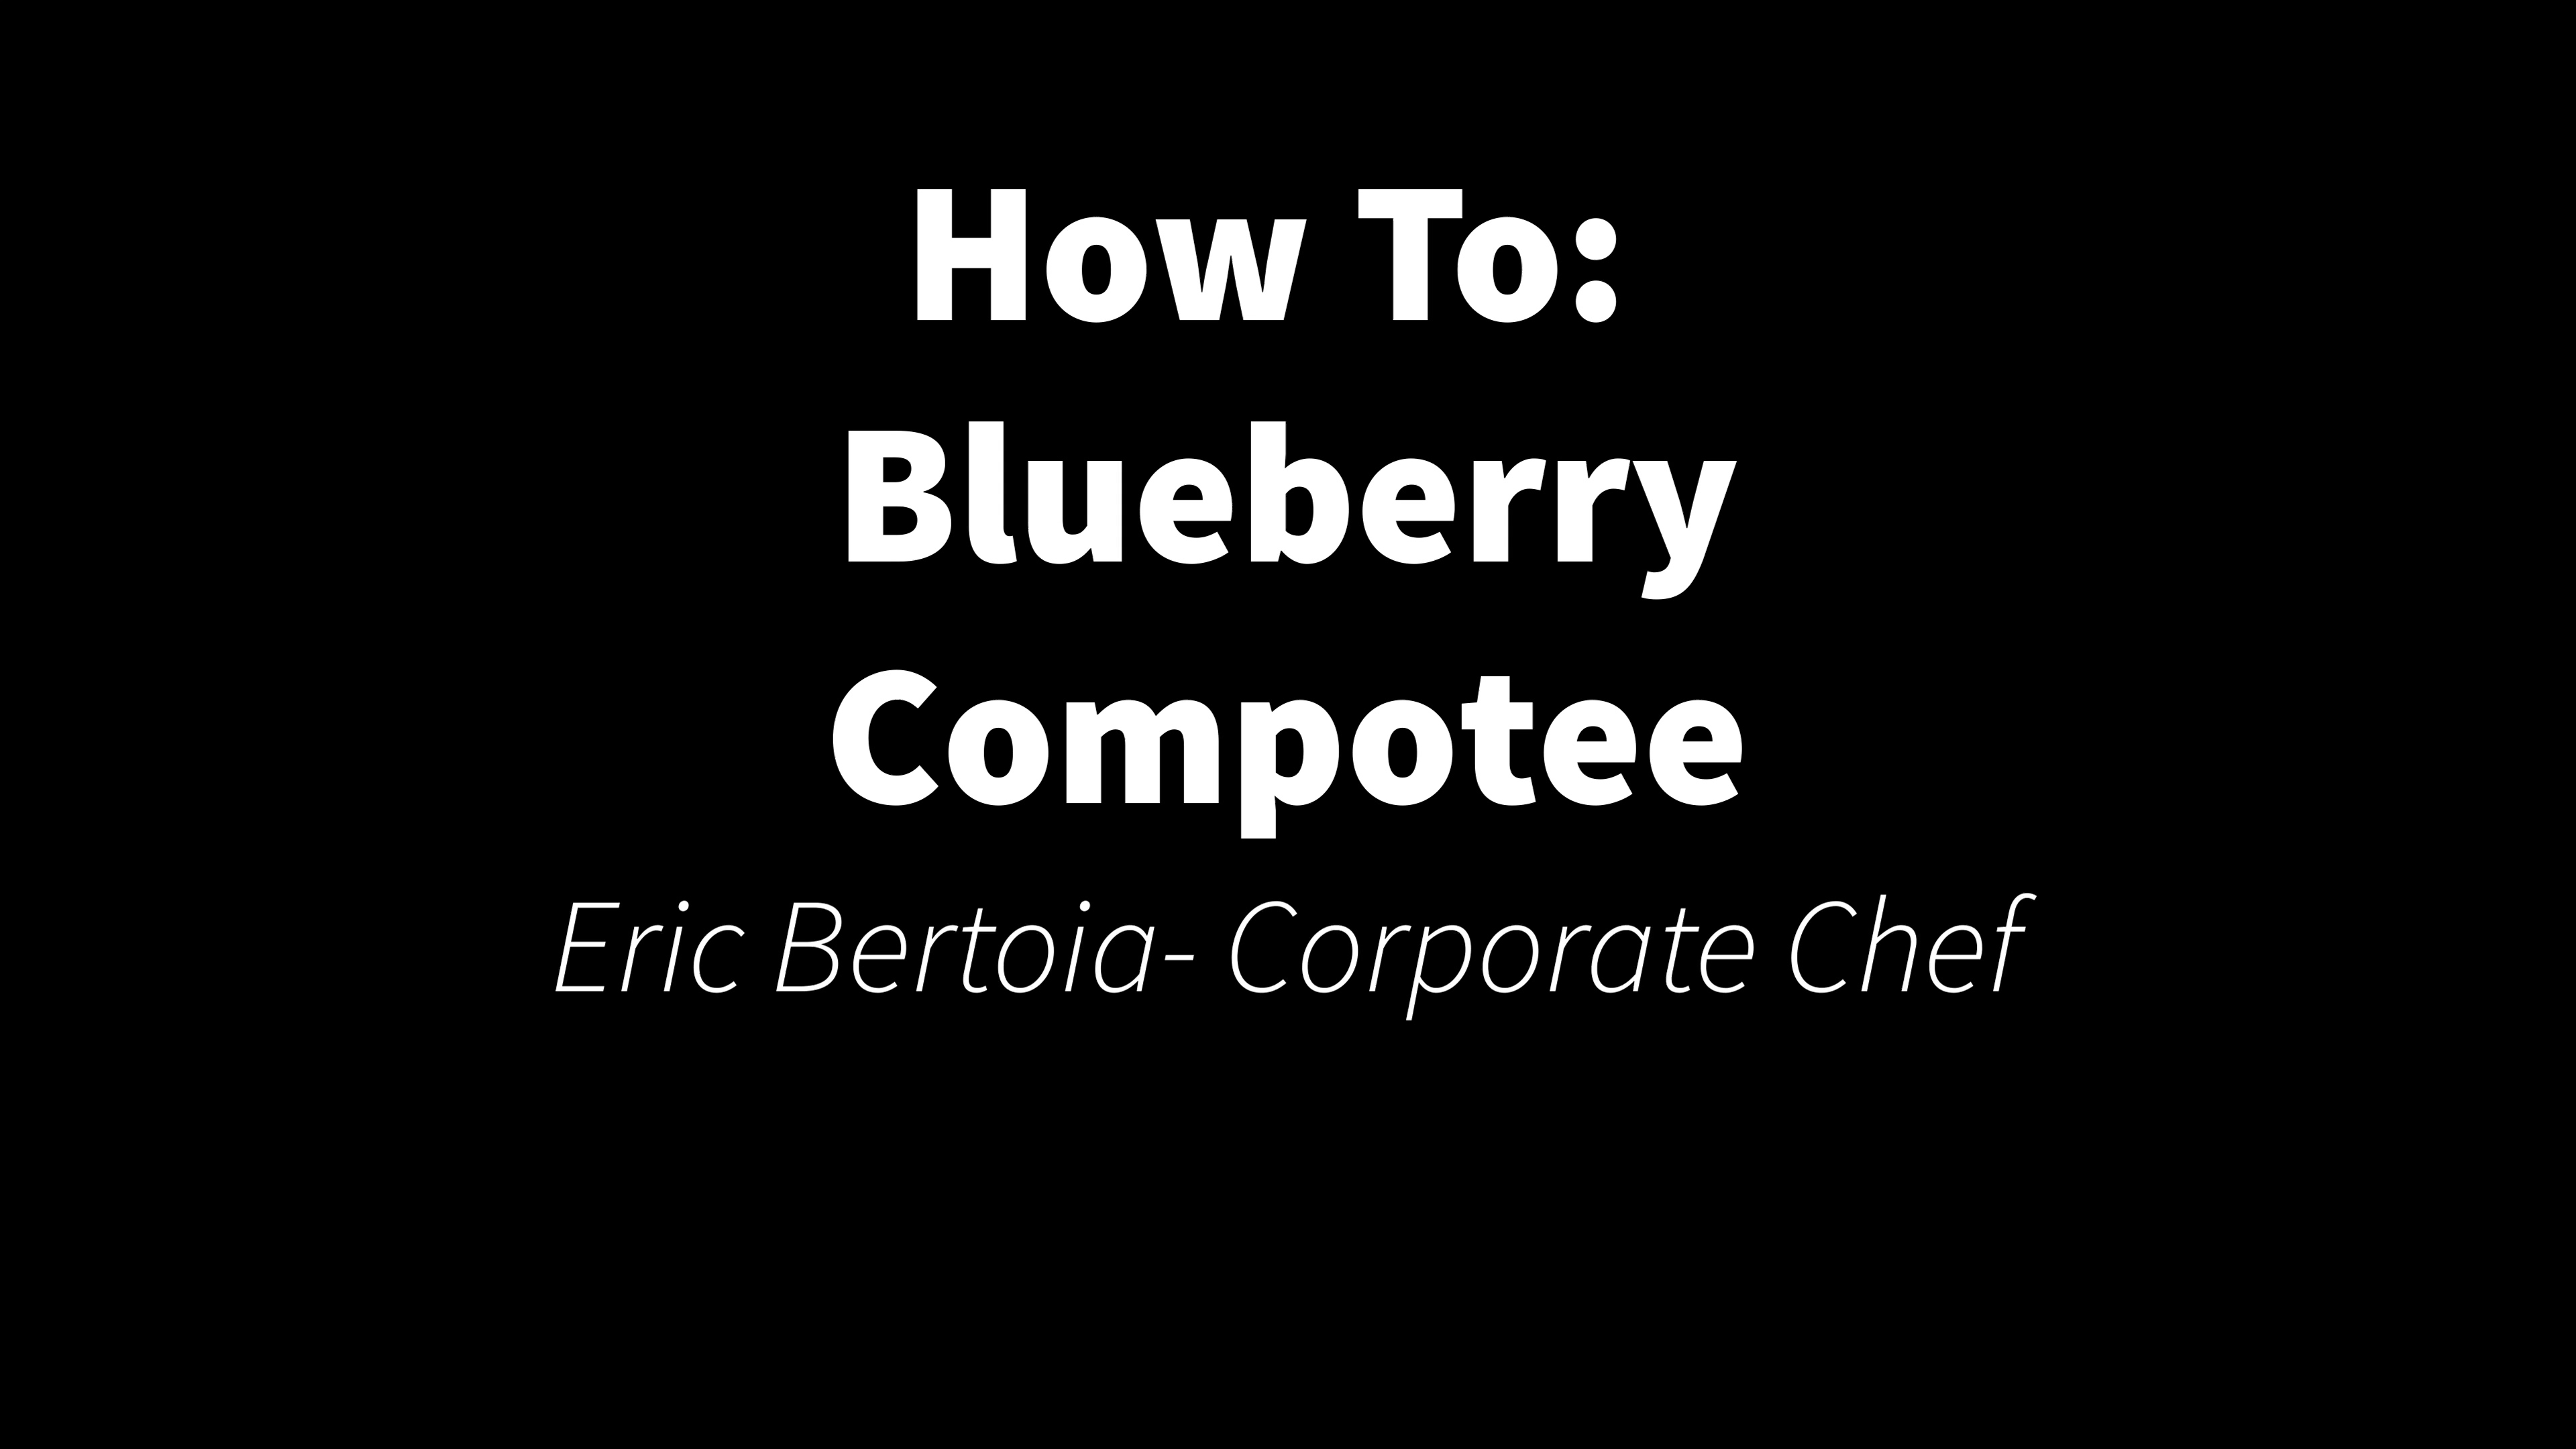 How To Blueberry Compotee